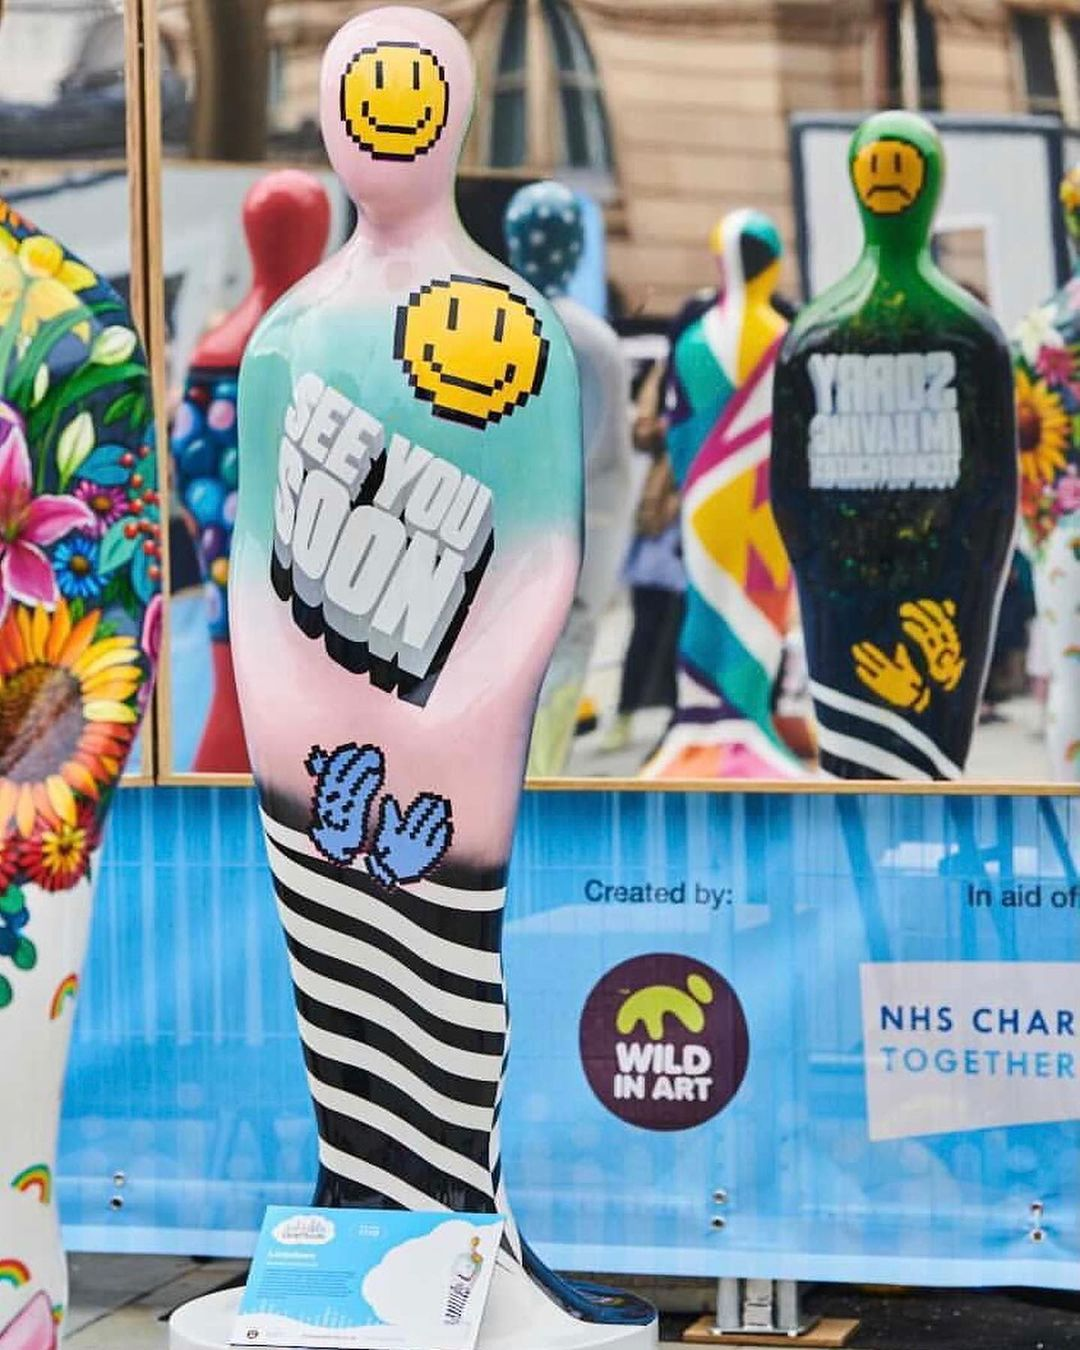 Everything we know about the upcoming NHS art trail in Manchester, The Manc